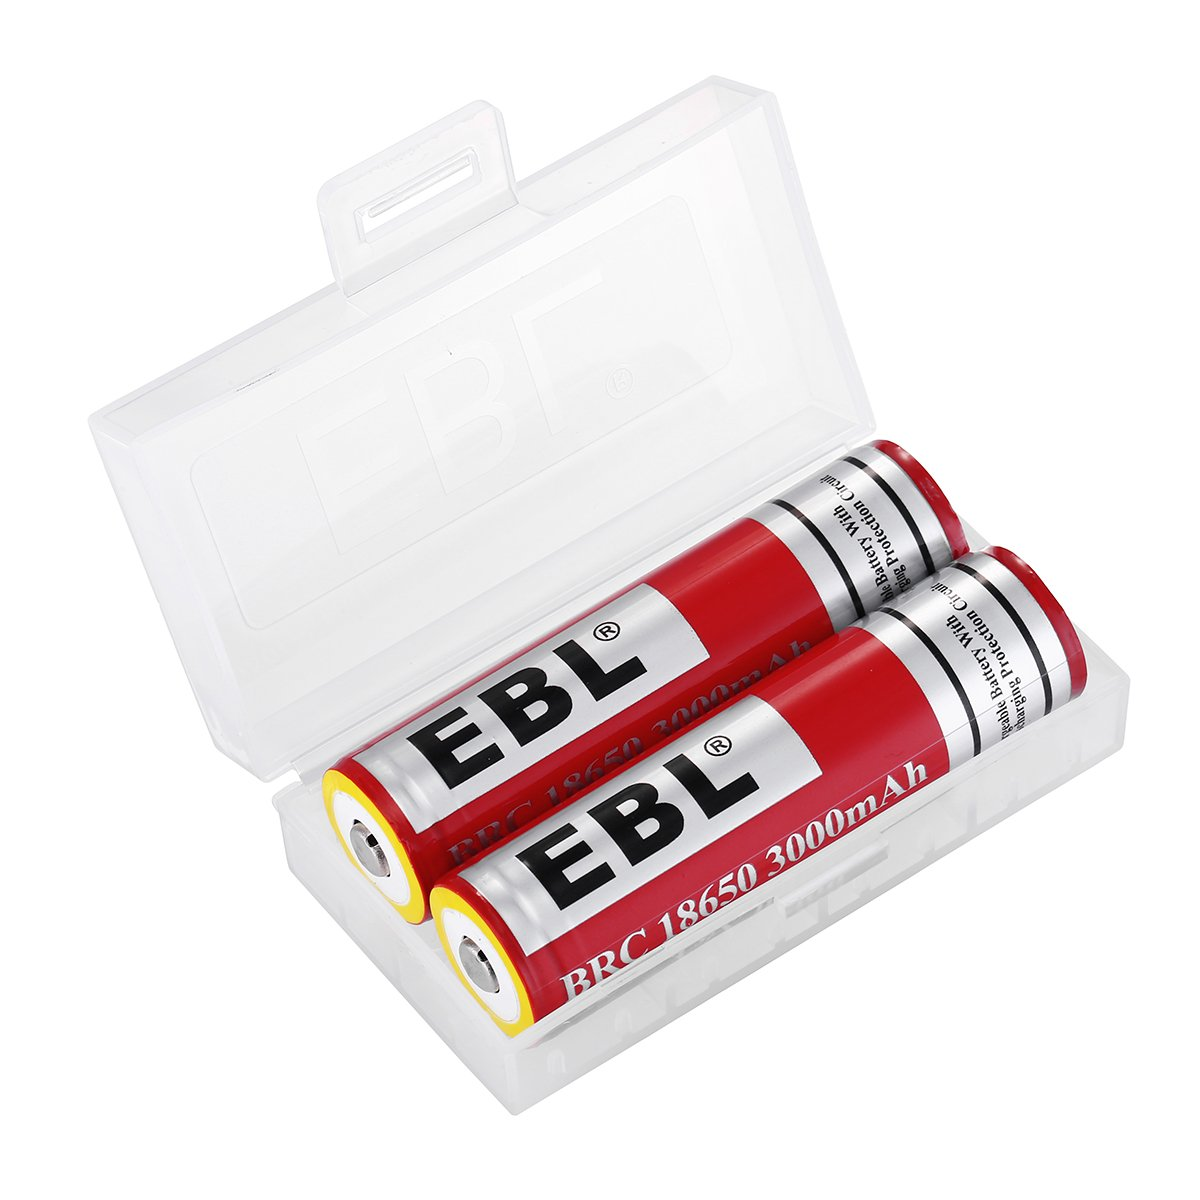 EBL Upgraded 18650 3.7V Rechargeable Batteries 3000mAh with Strong Yellow Protection Ring - PCB Protected - 2 Pack